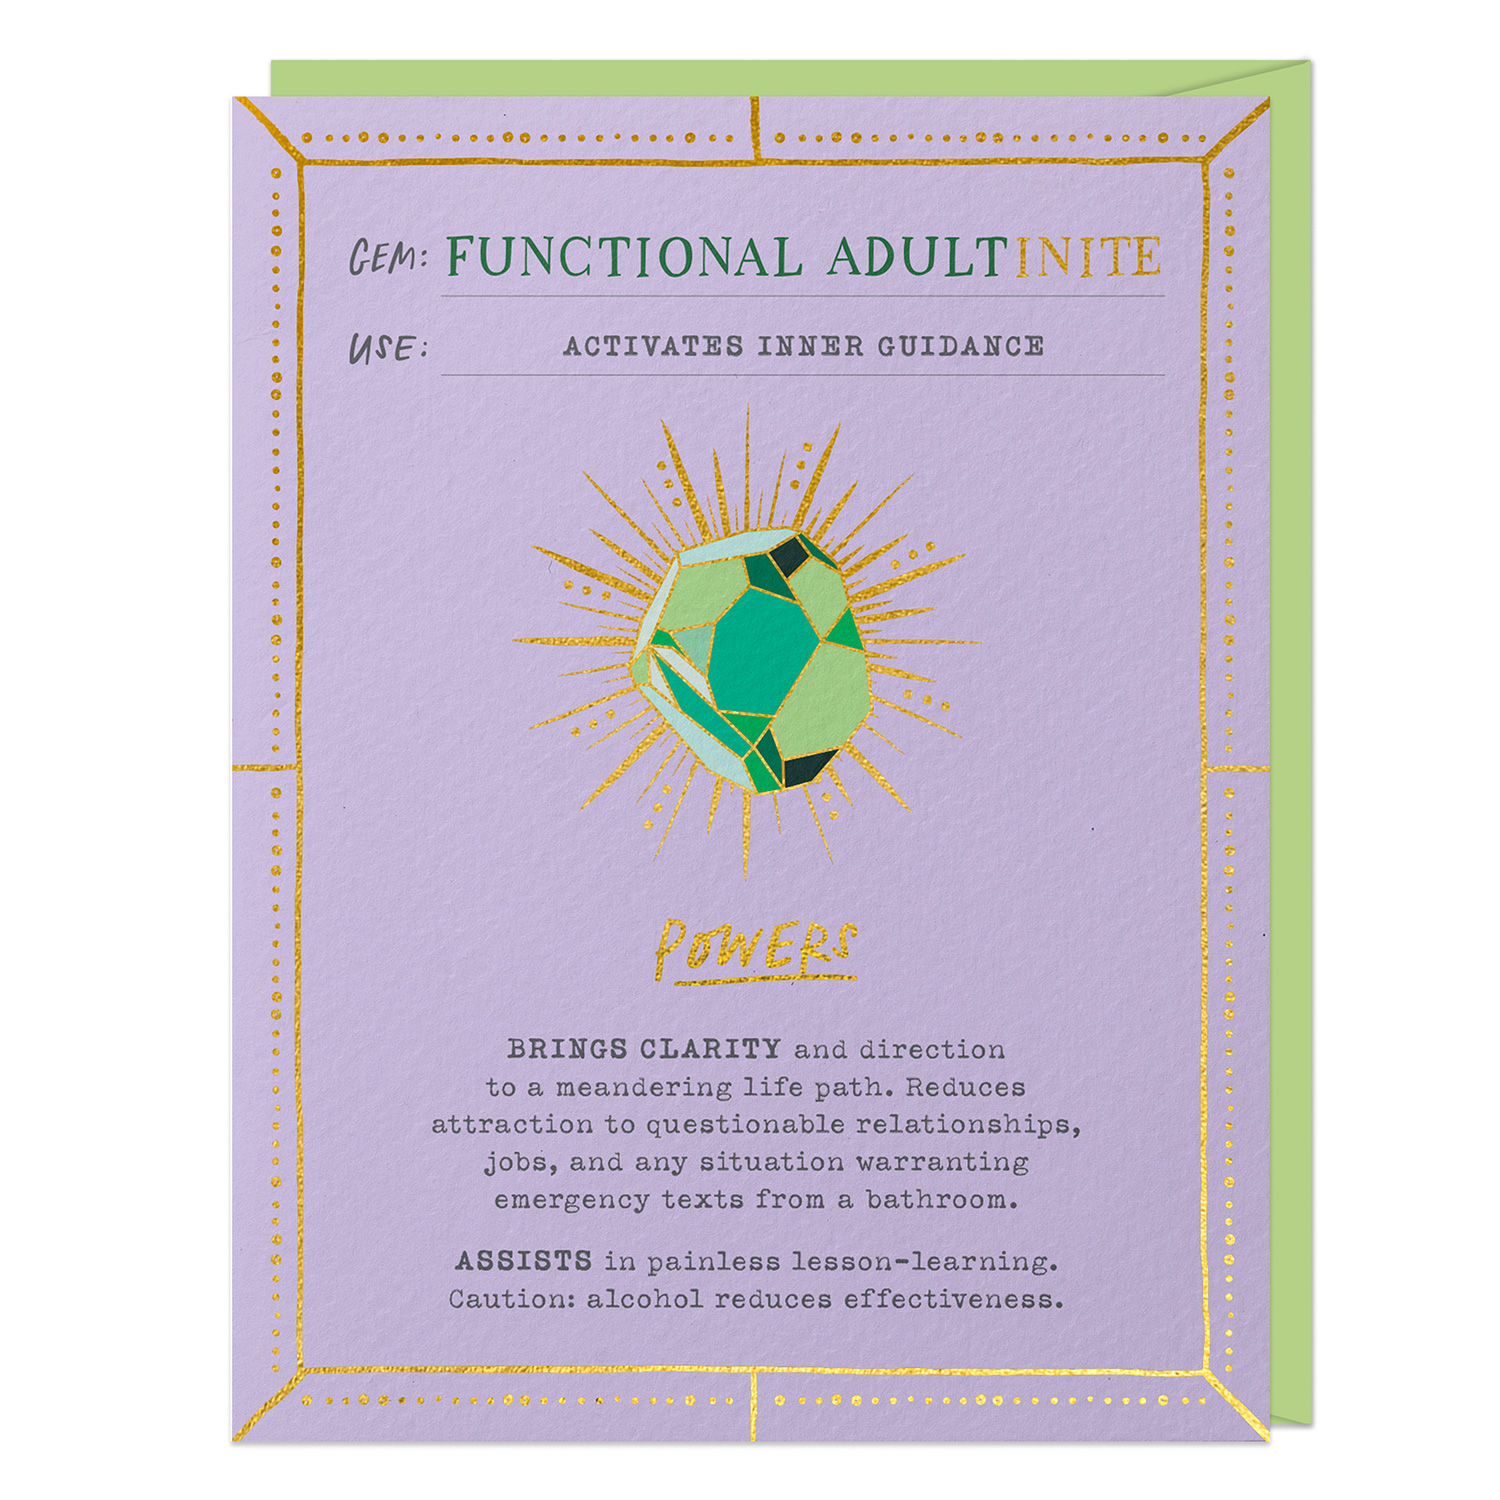 Fantasy Stone Card: Functional Adult